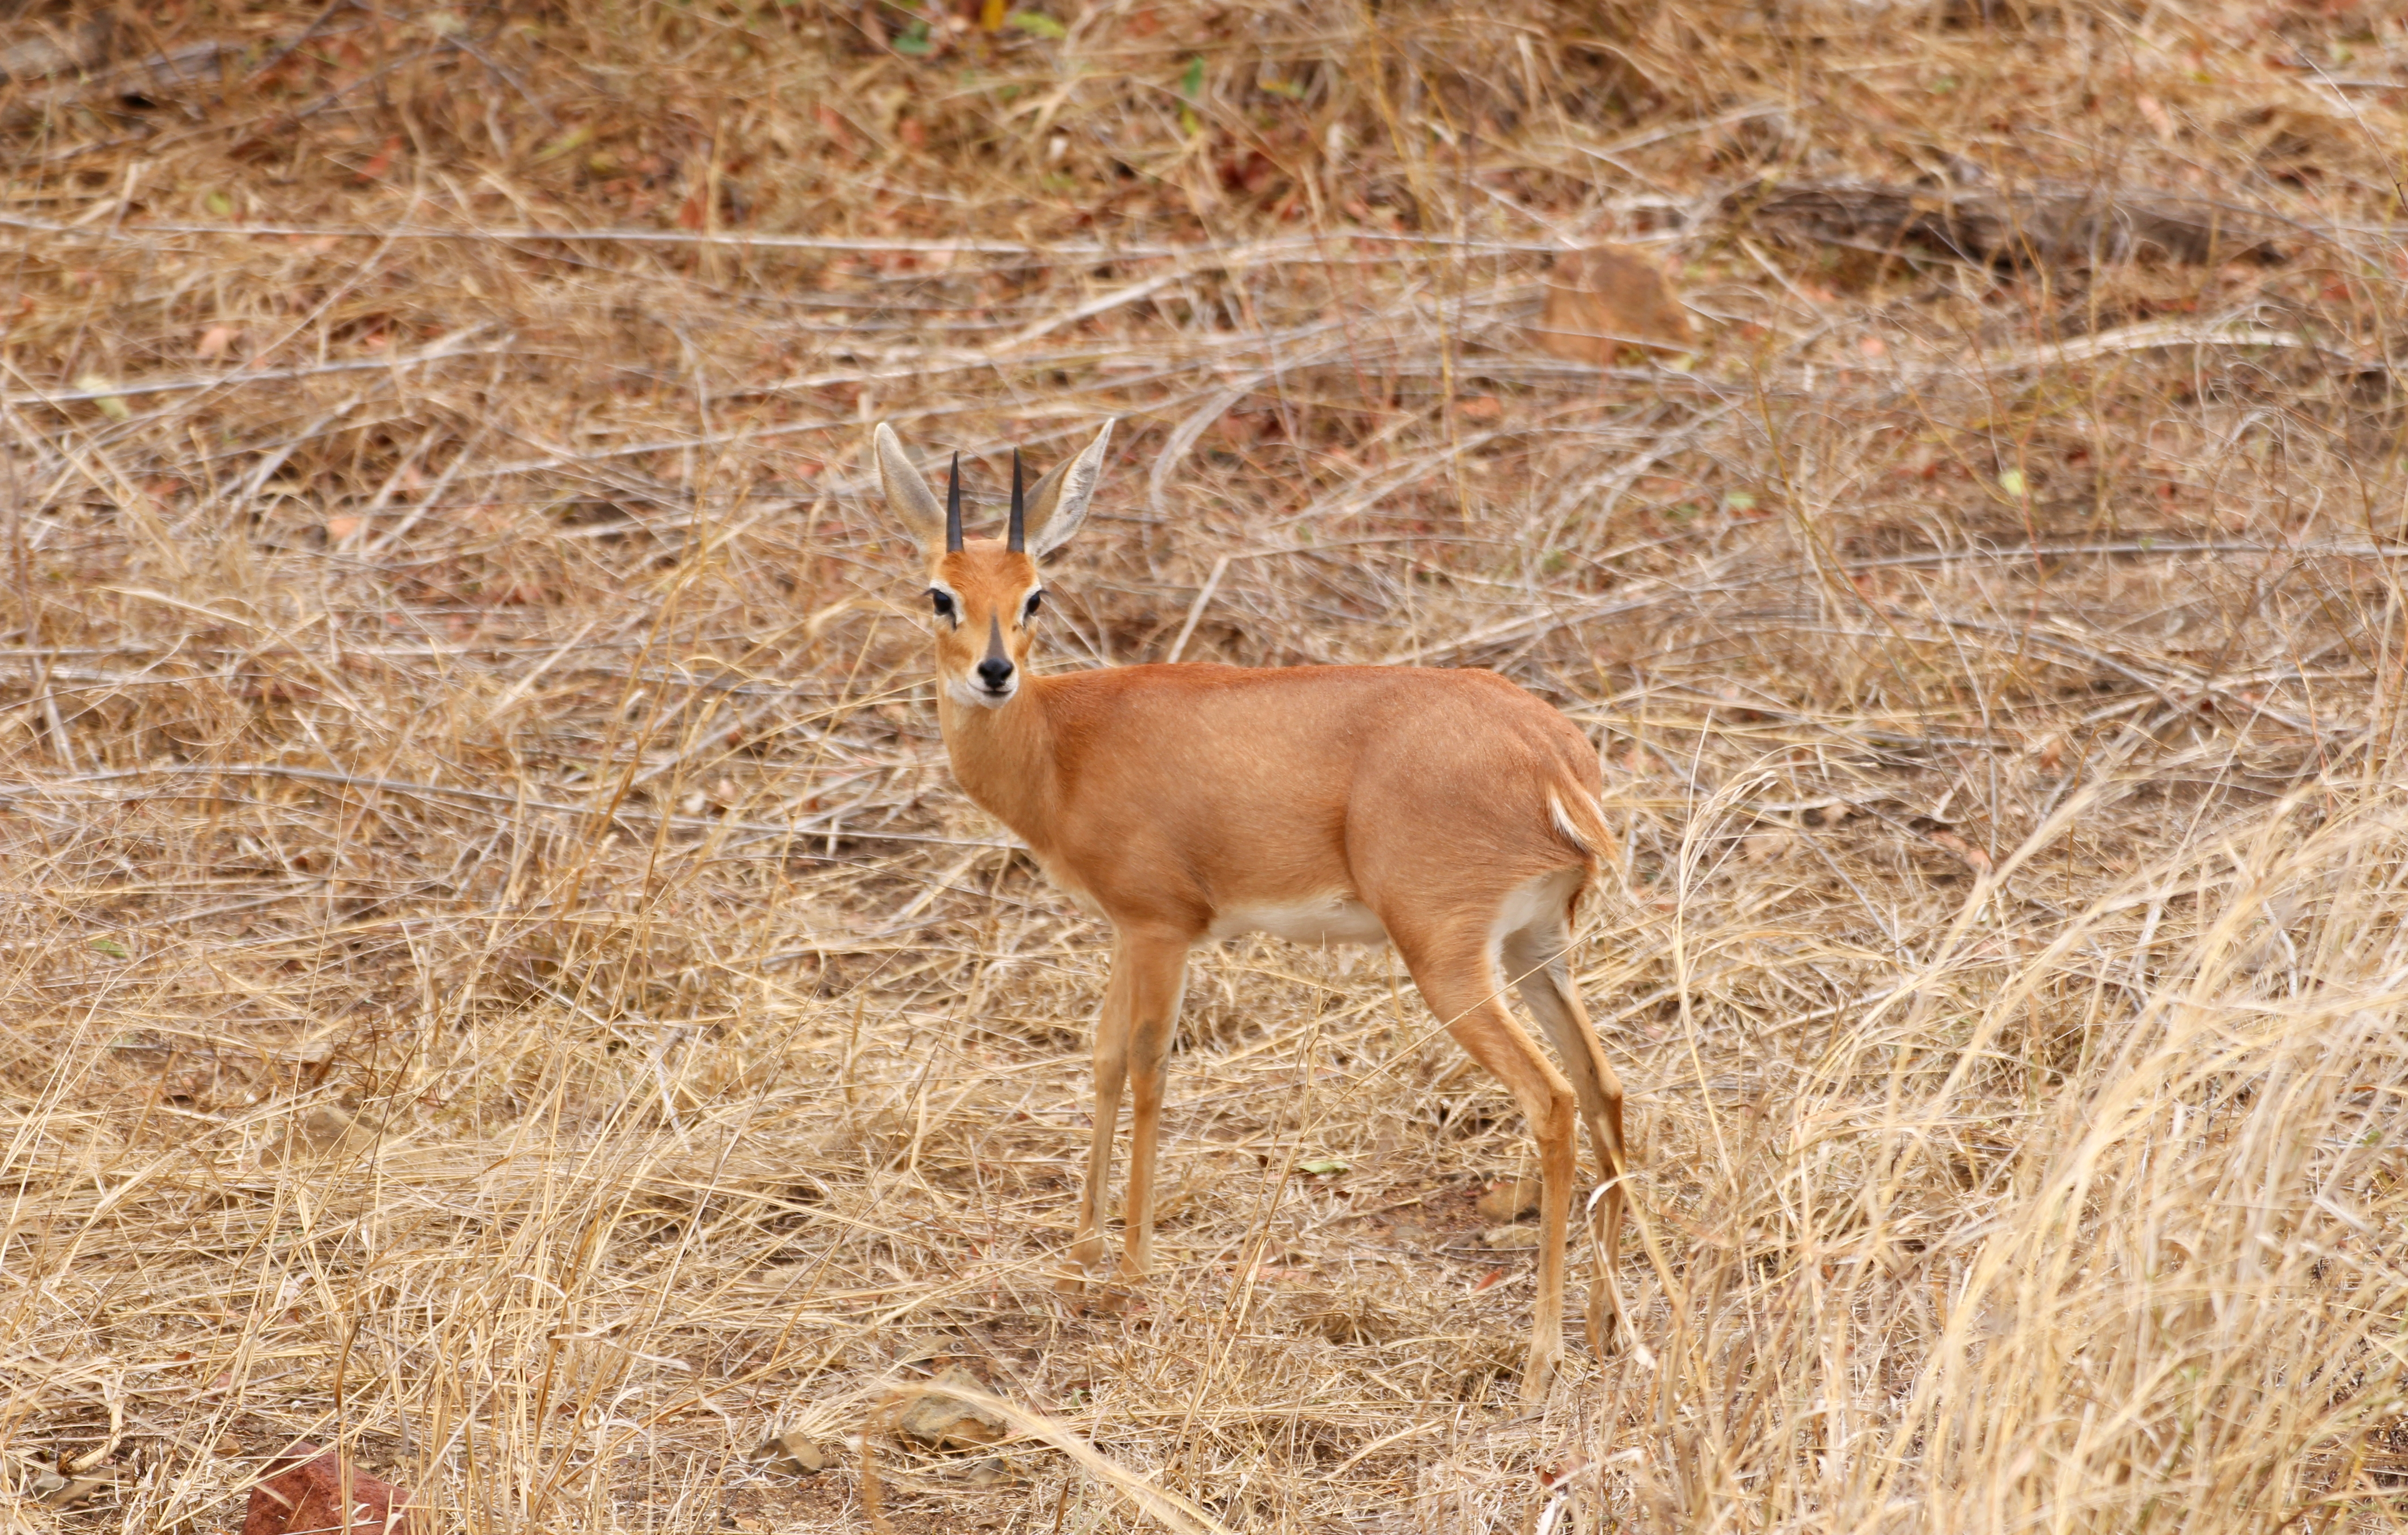 Kruger Small Antelope